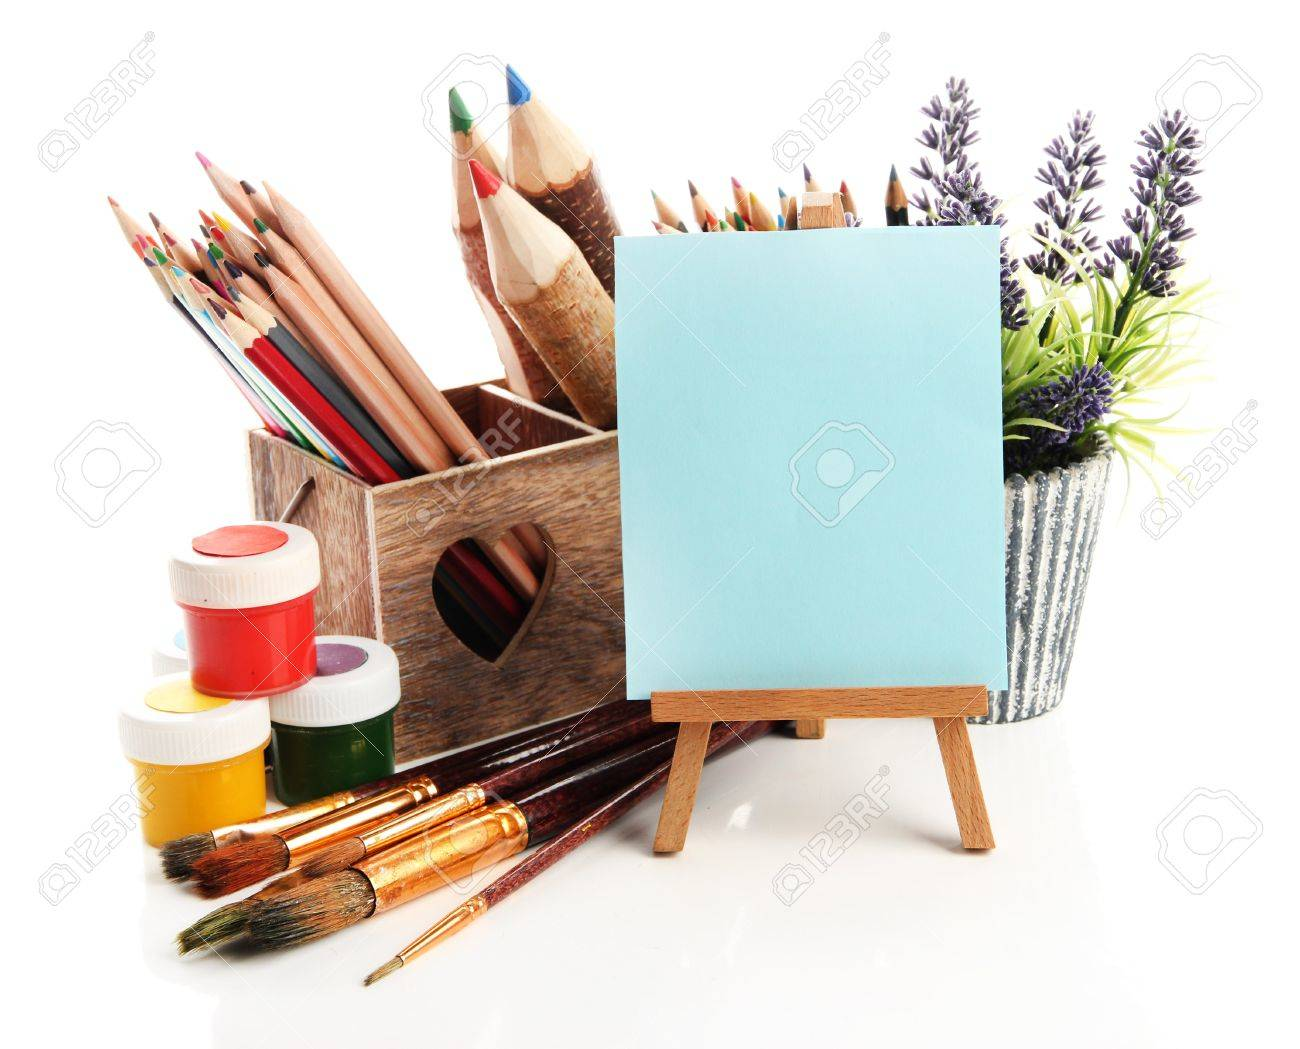 Pencils in wooden crate, paints, brushes and easel, isolated on white Stock Photo - 19988748